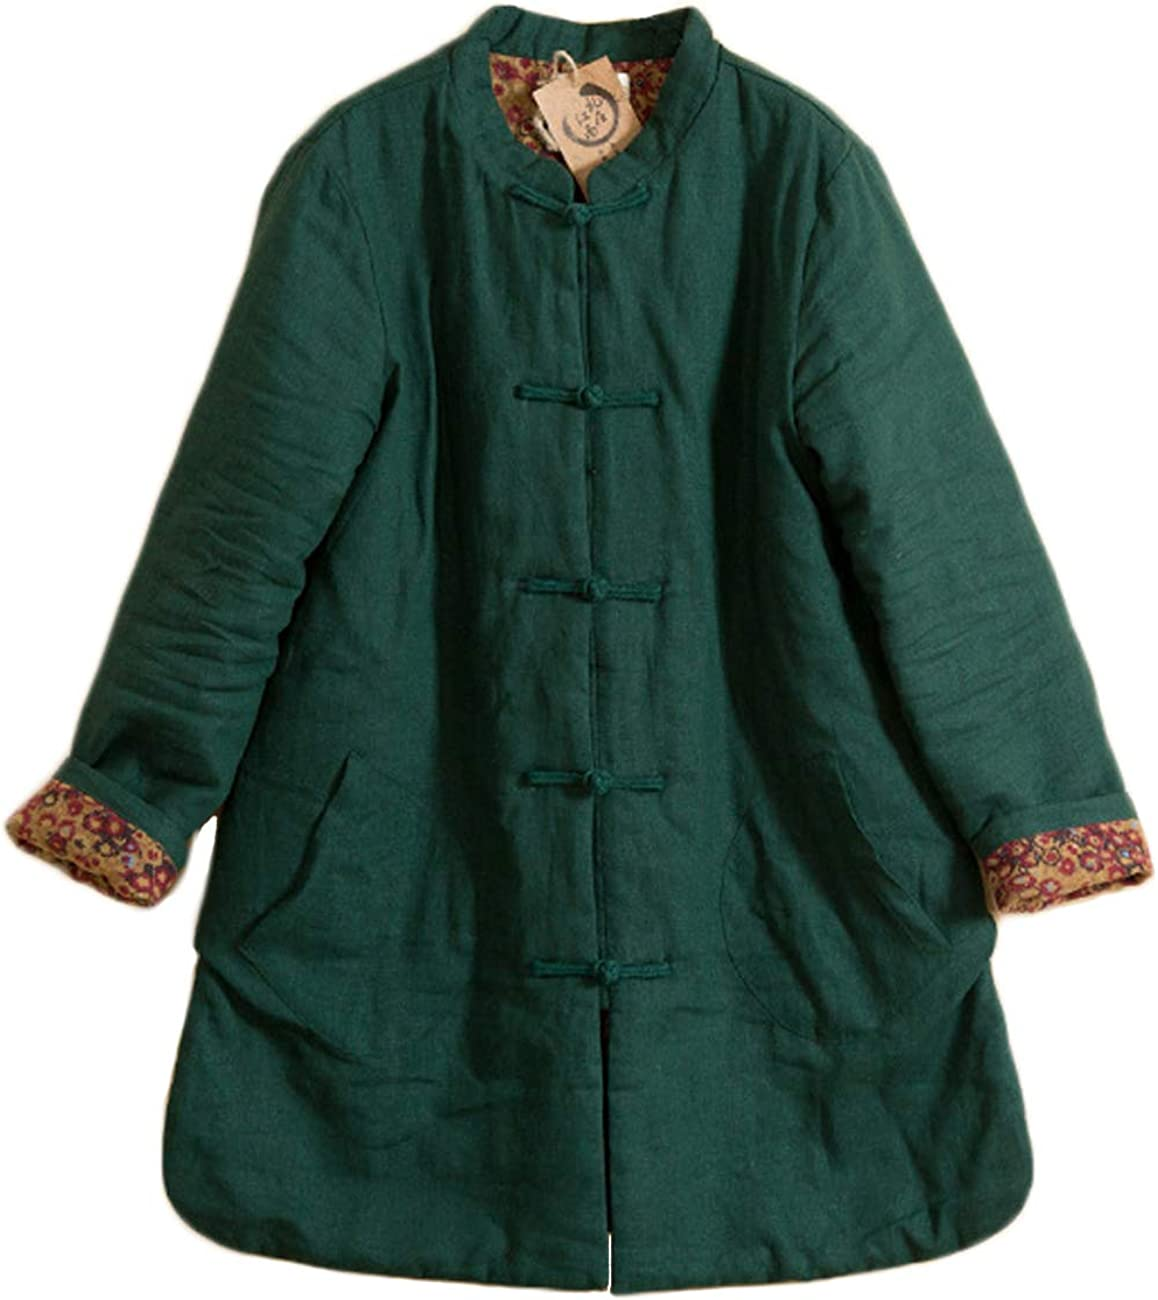 LZJN Women Quilted Lightweight Jackets Chinese Tang Suit Closure Coat